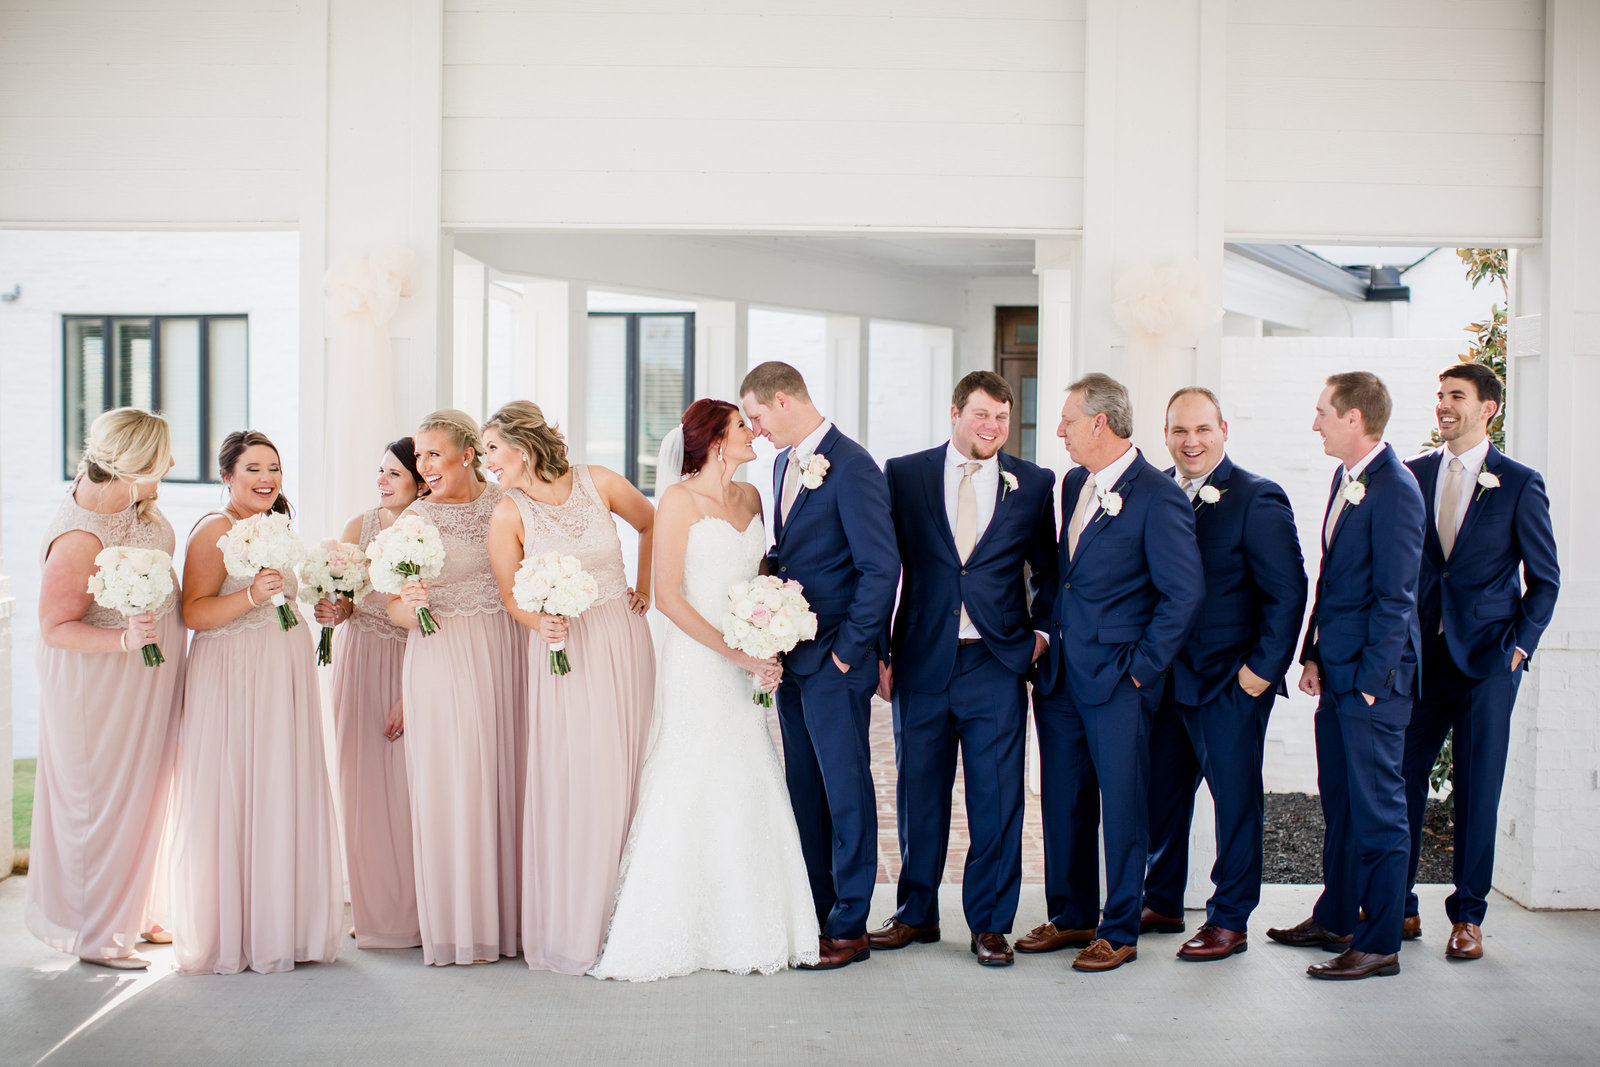 Entire bridal party at Holston Hills Country Club by Knoxville Wedding Photographer, Amanda May Photos.